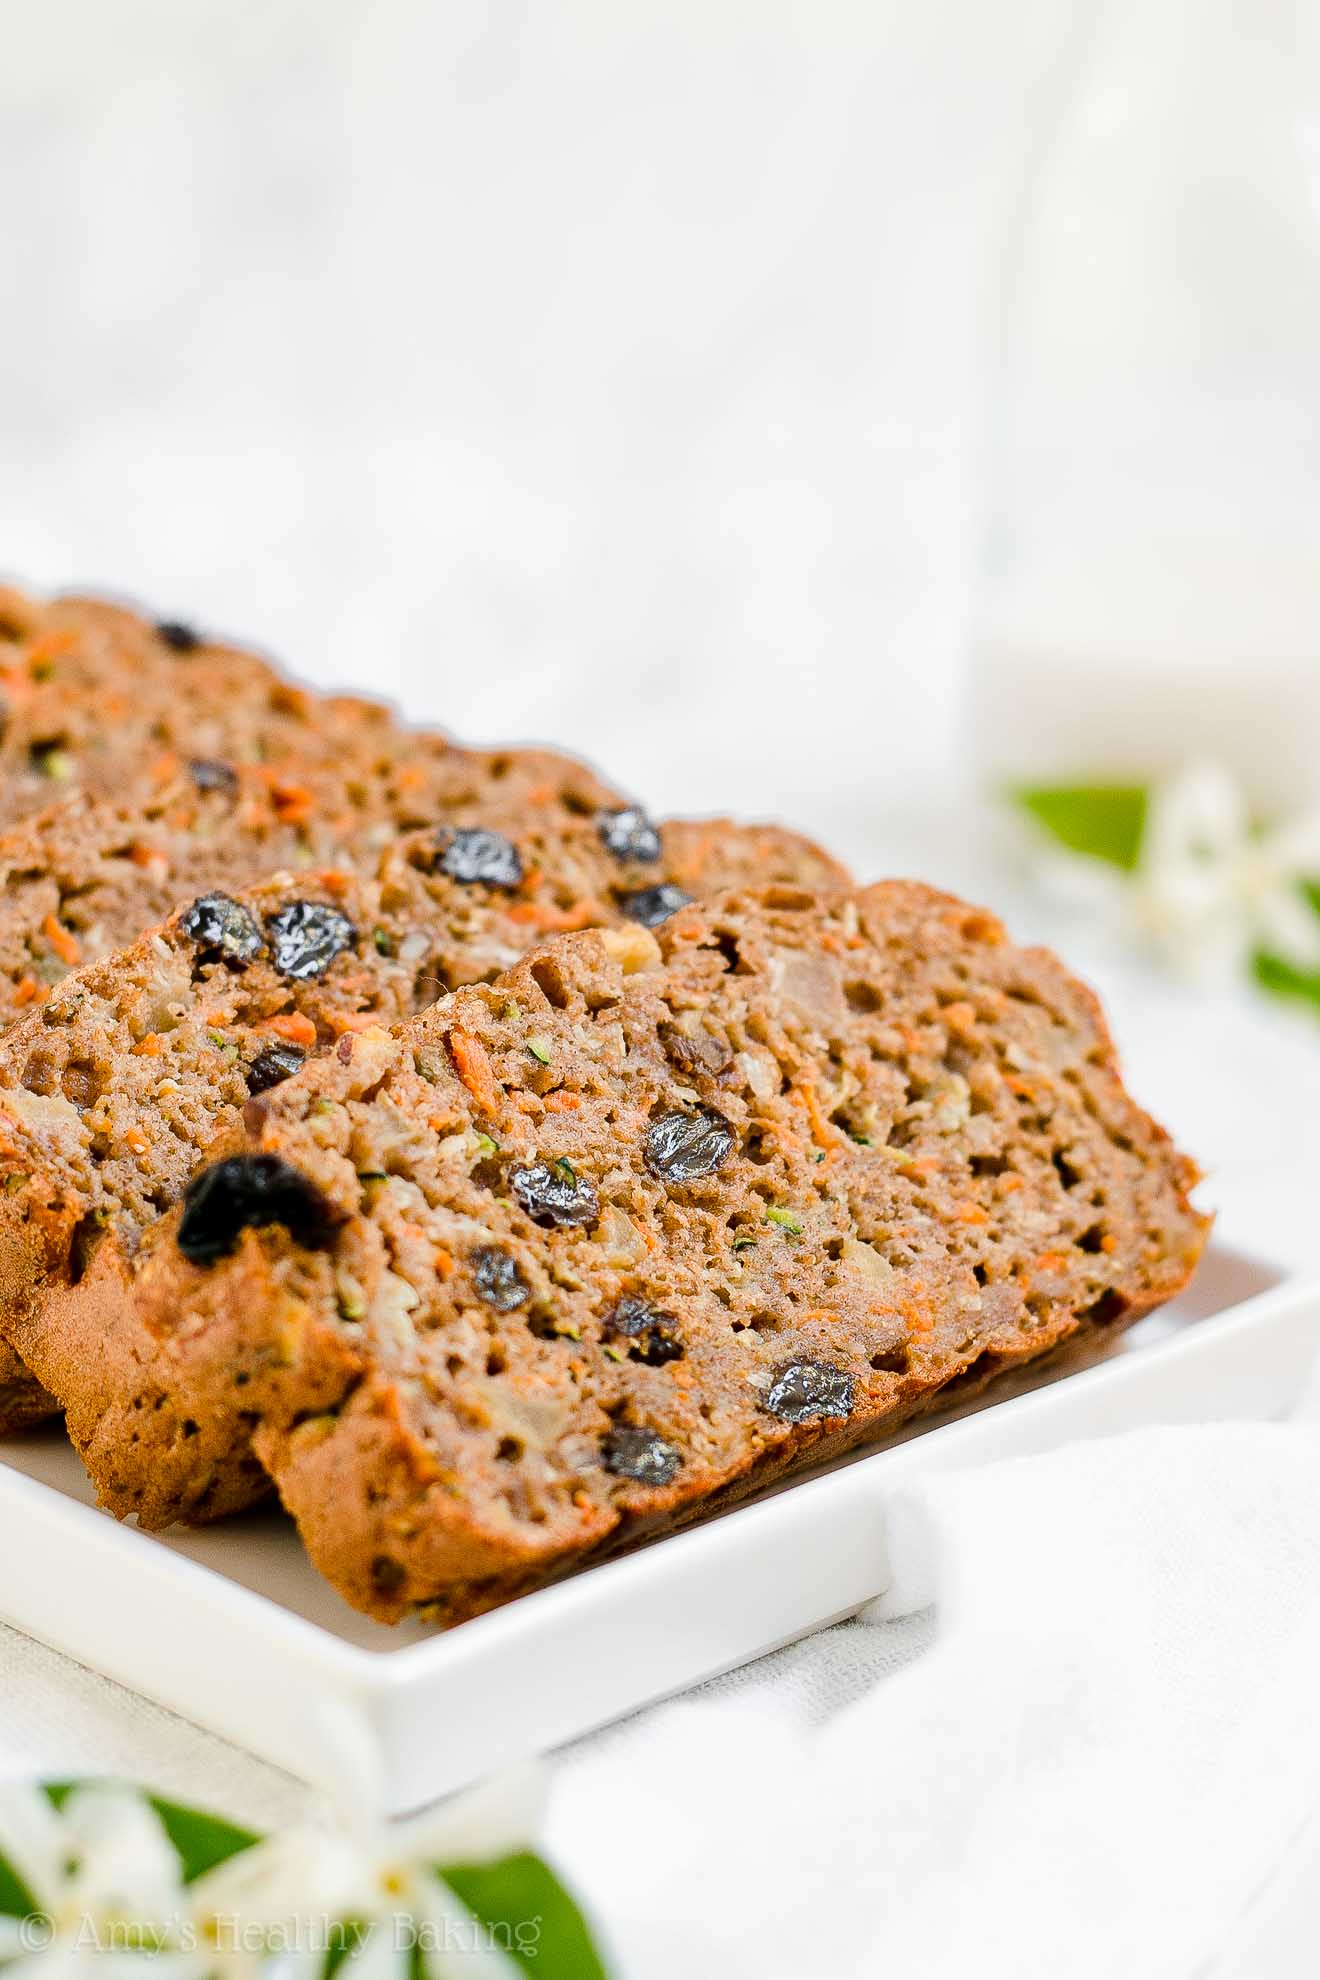 Clean Eating Healthy Morning Glory Zucchini Bread